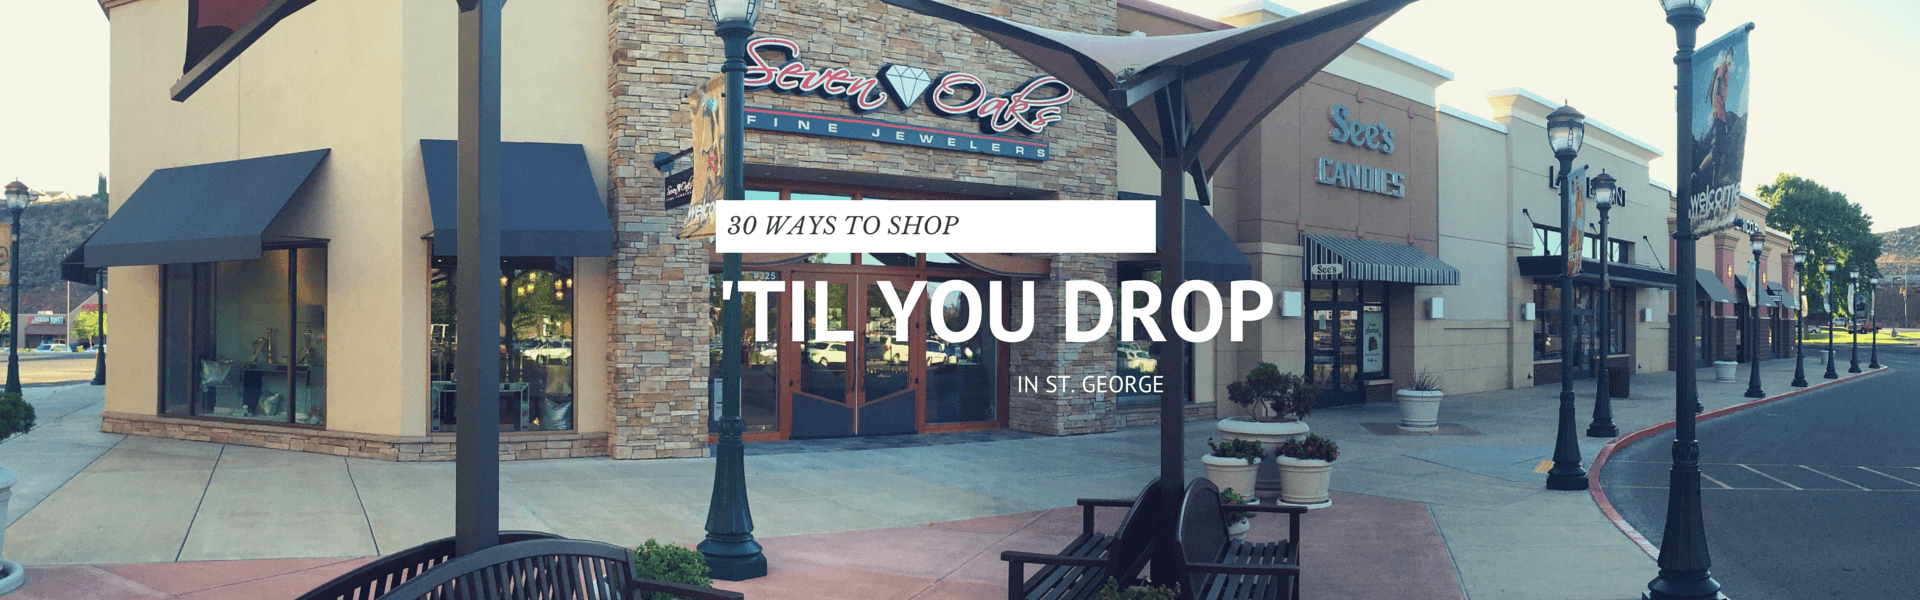 30 Ways To Shop Til You Drop In St. George - Red Cliffs Mall